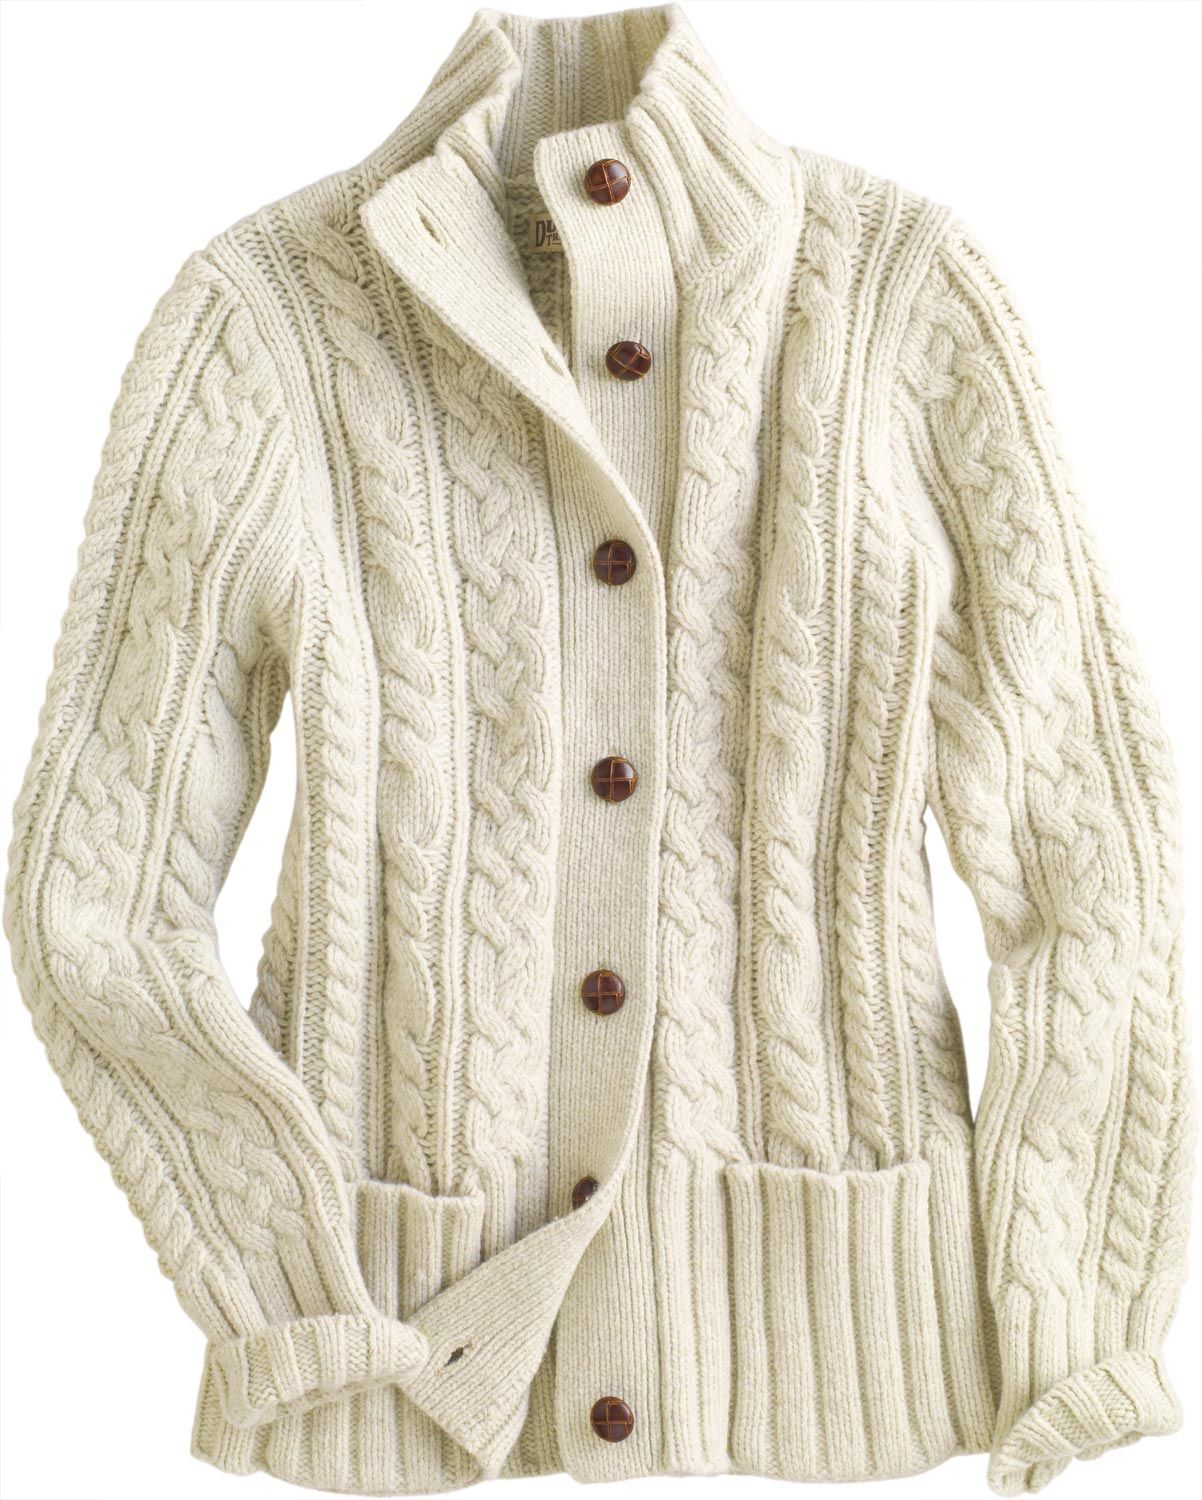 725a3e8f2bce5f The women's Fisherman Cardigan Sweater looks like a classic. But - wowza! -  with a smidge of cashmere mixed in wait'll you feel it.